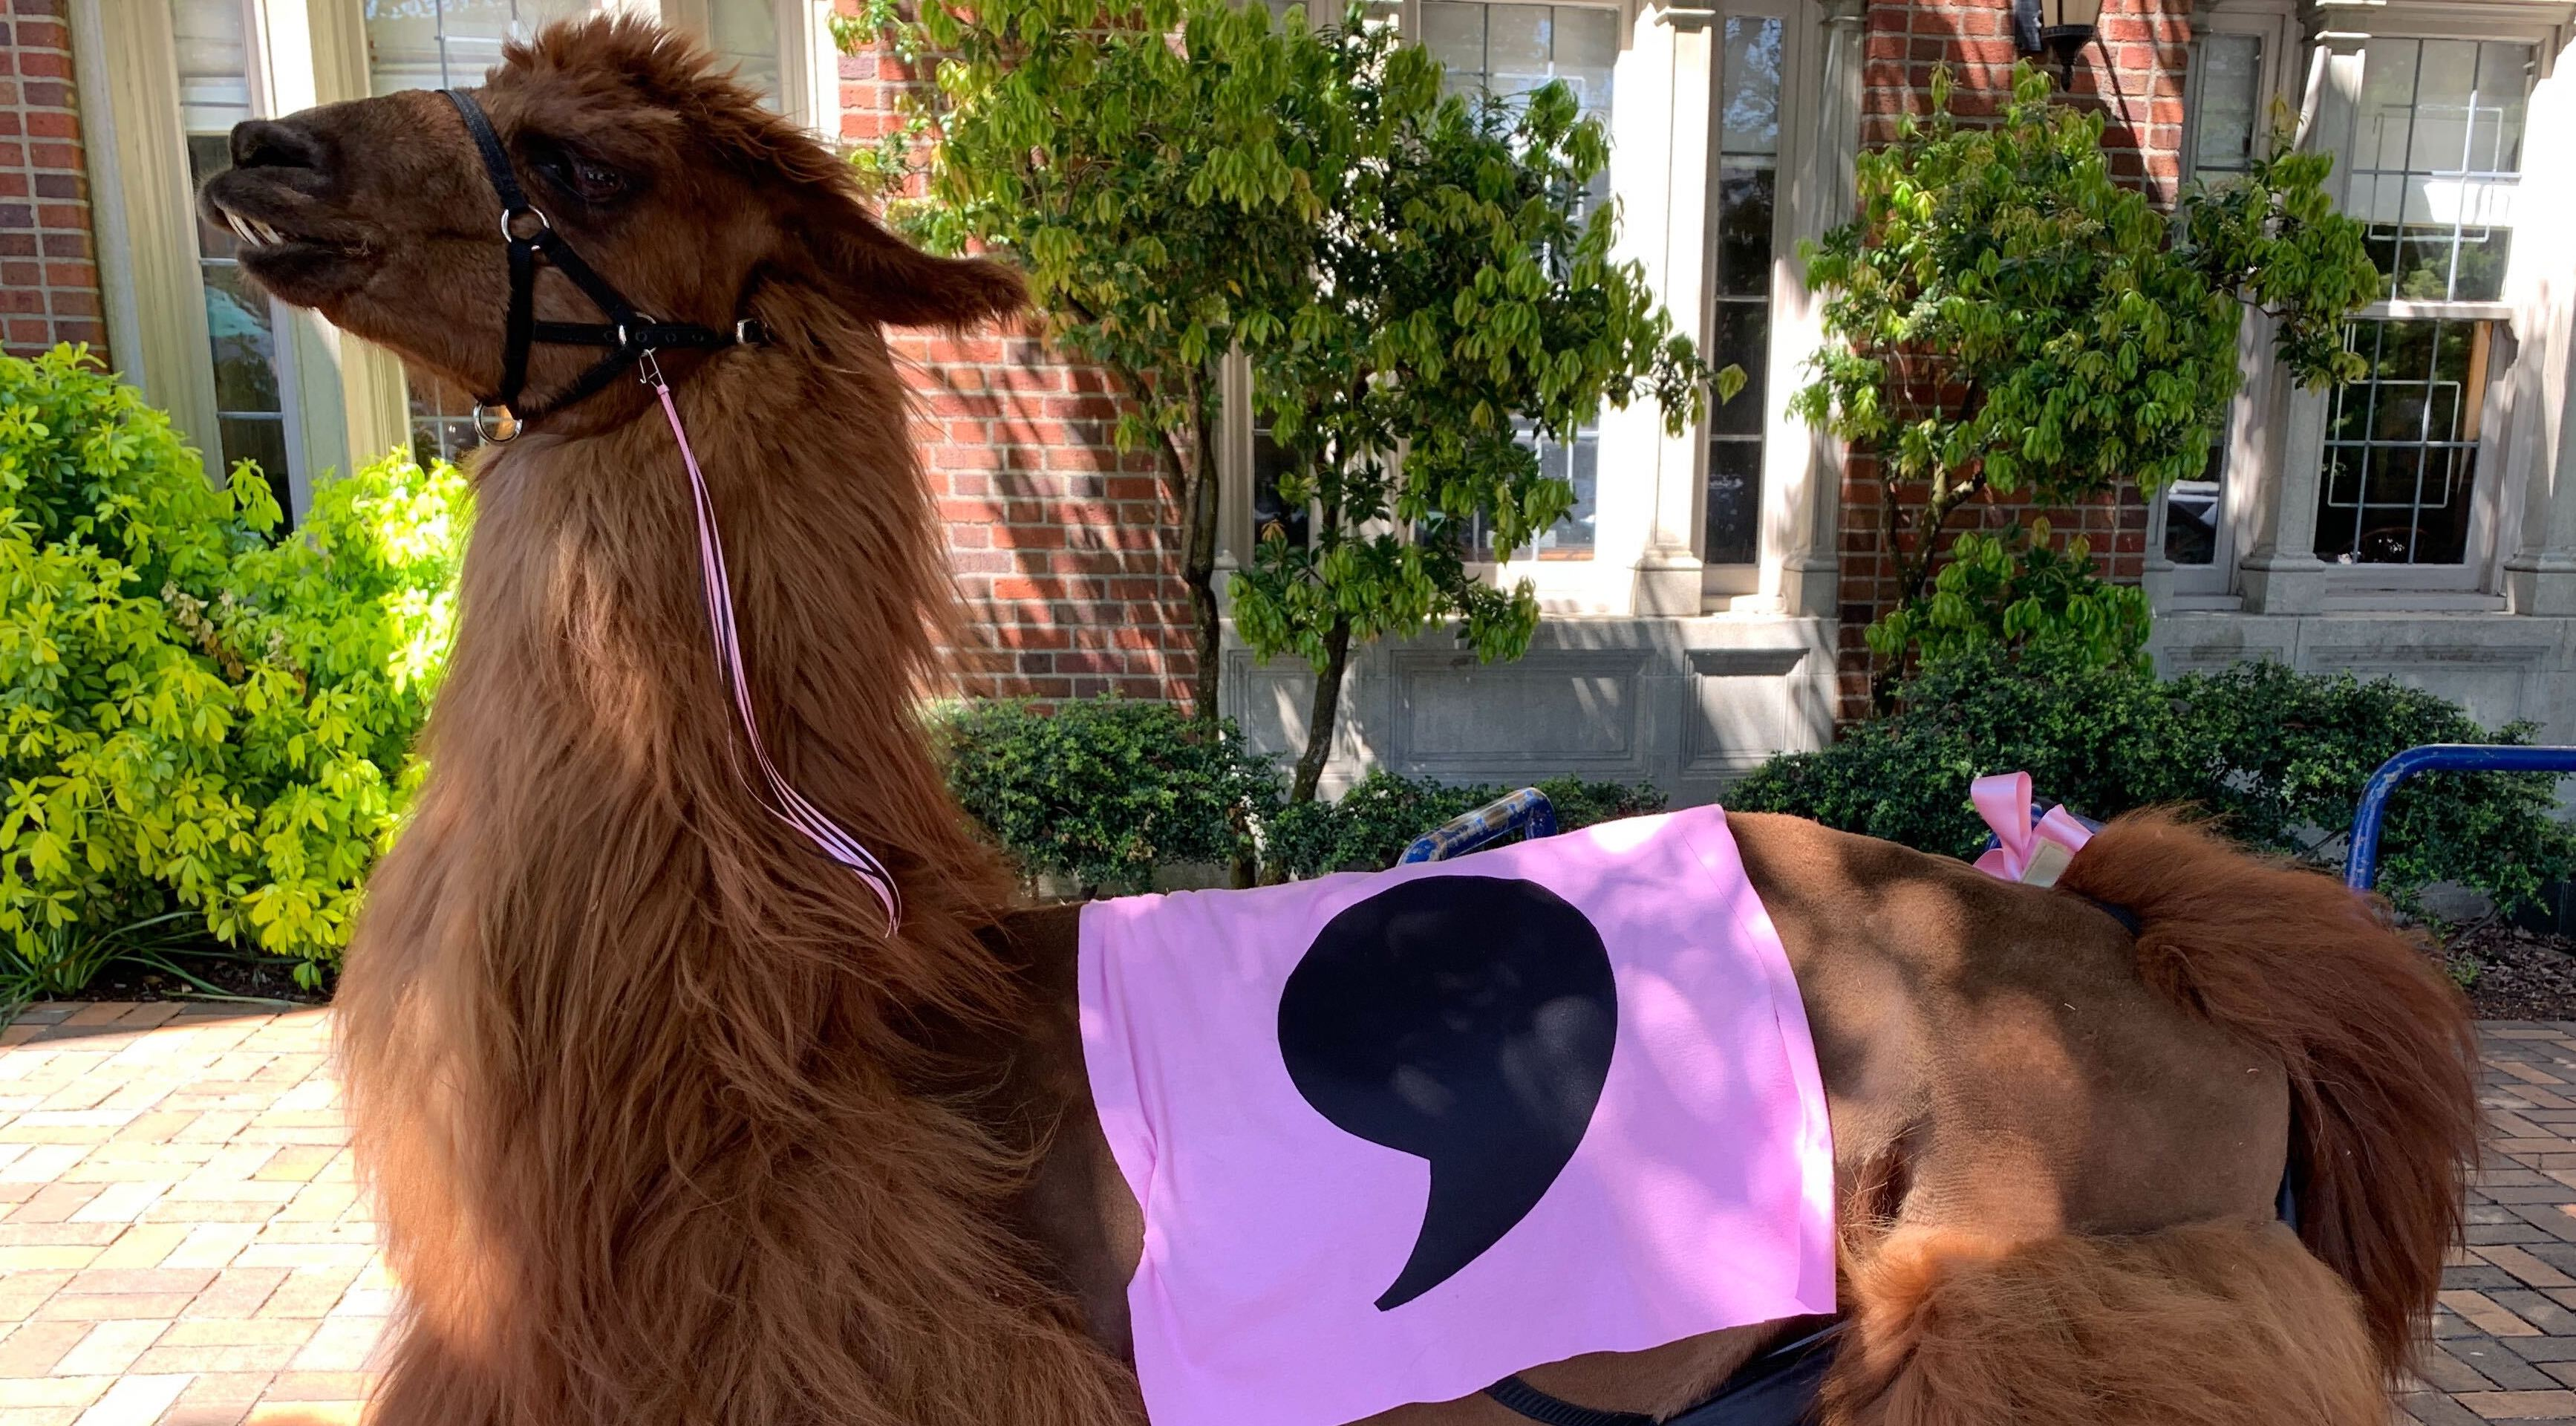 Llama posing with pink cape with comma icon